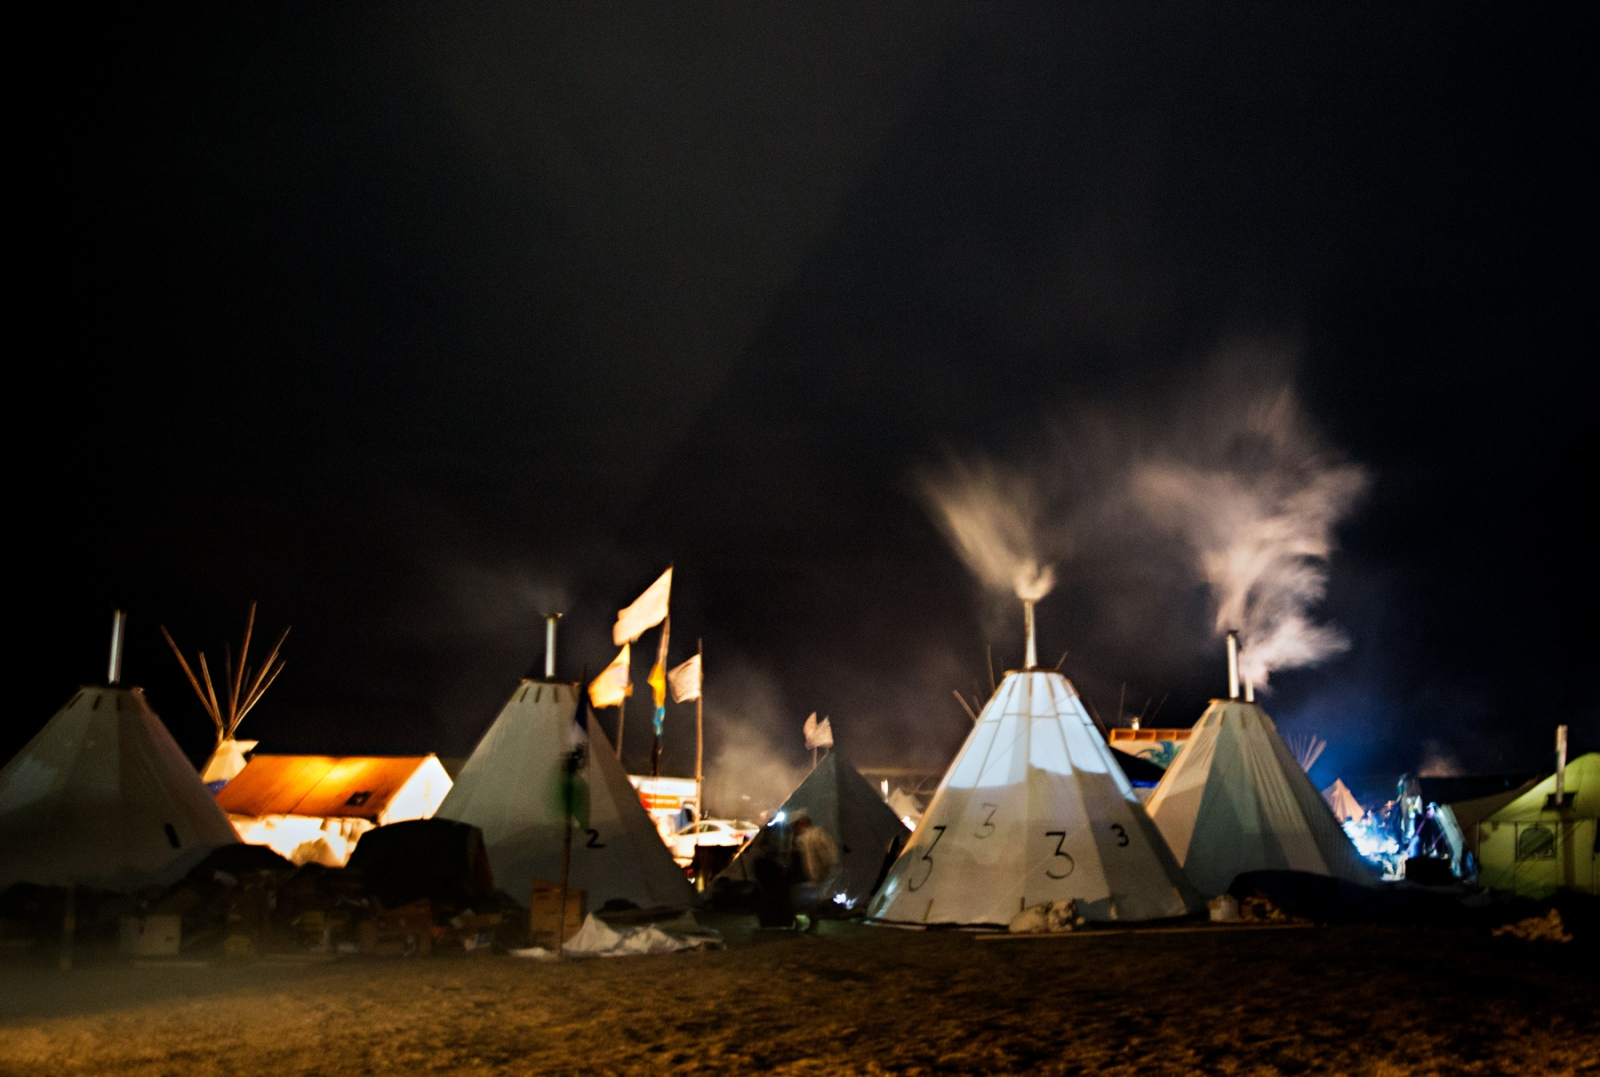 During the frigid November night the smoke from the teepees wood burning heater is appearant.